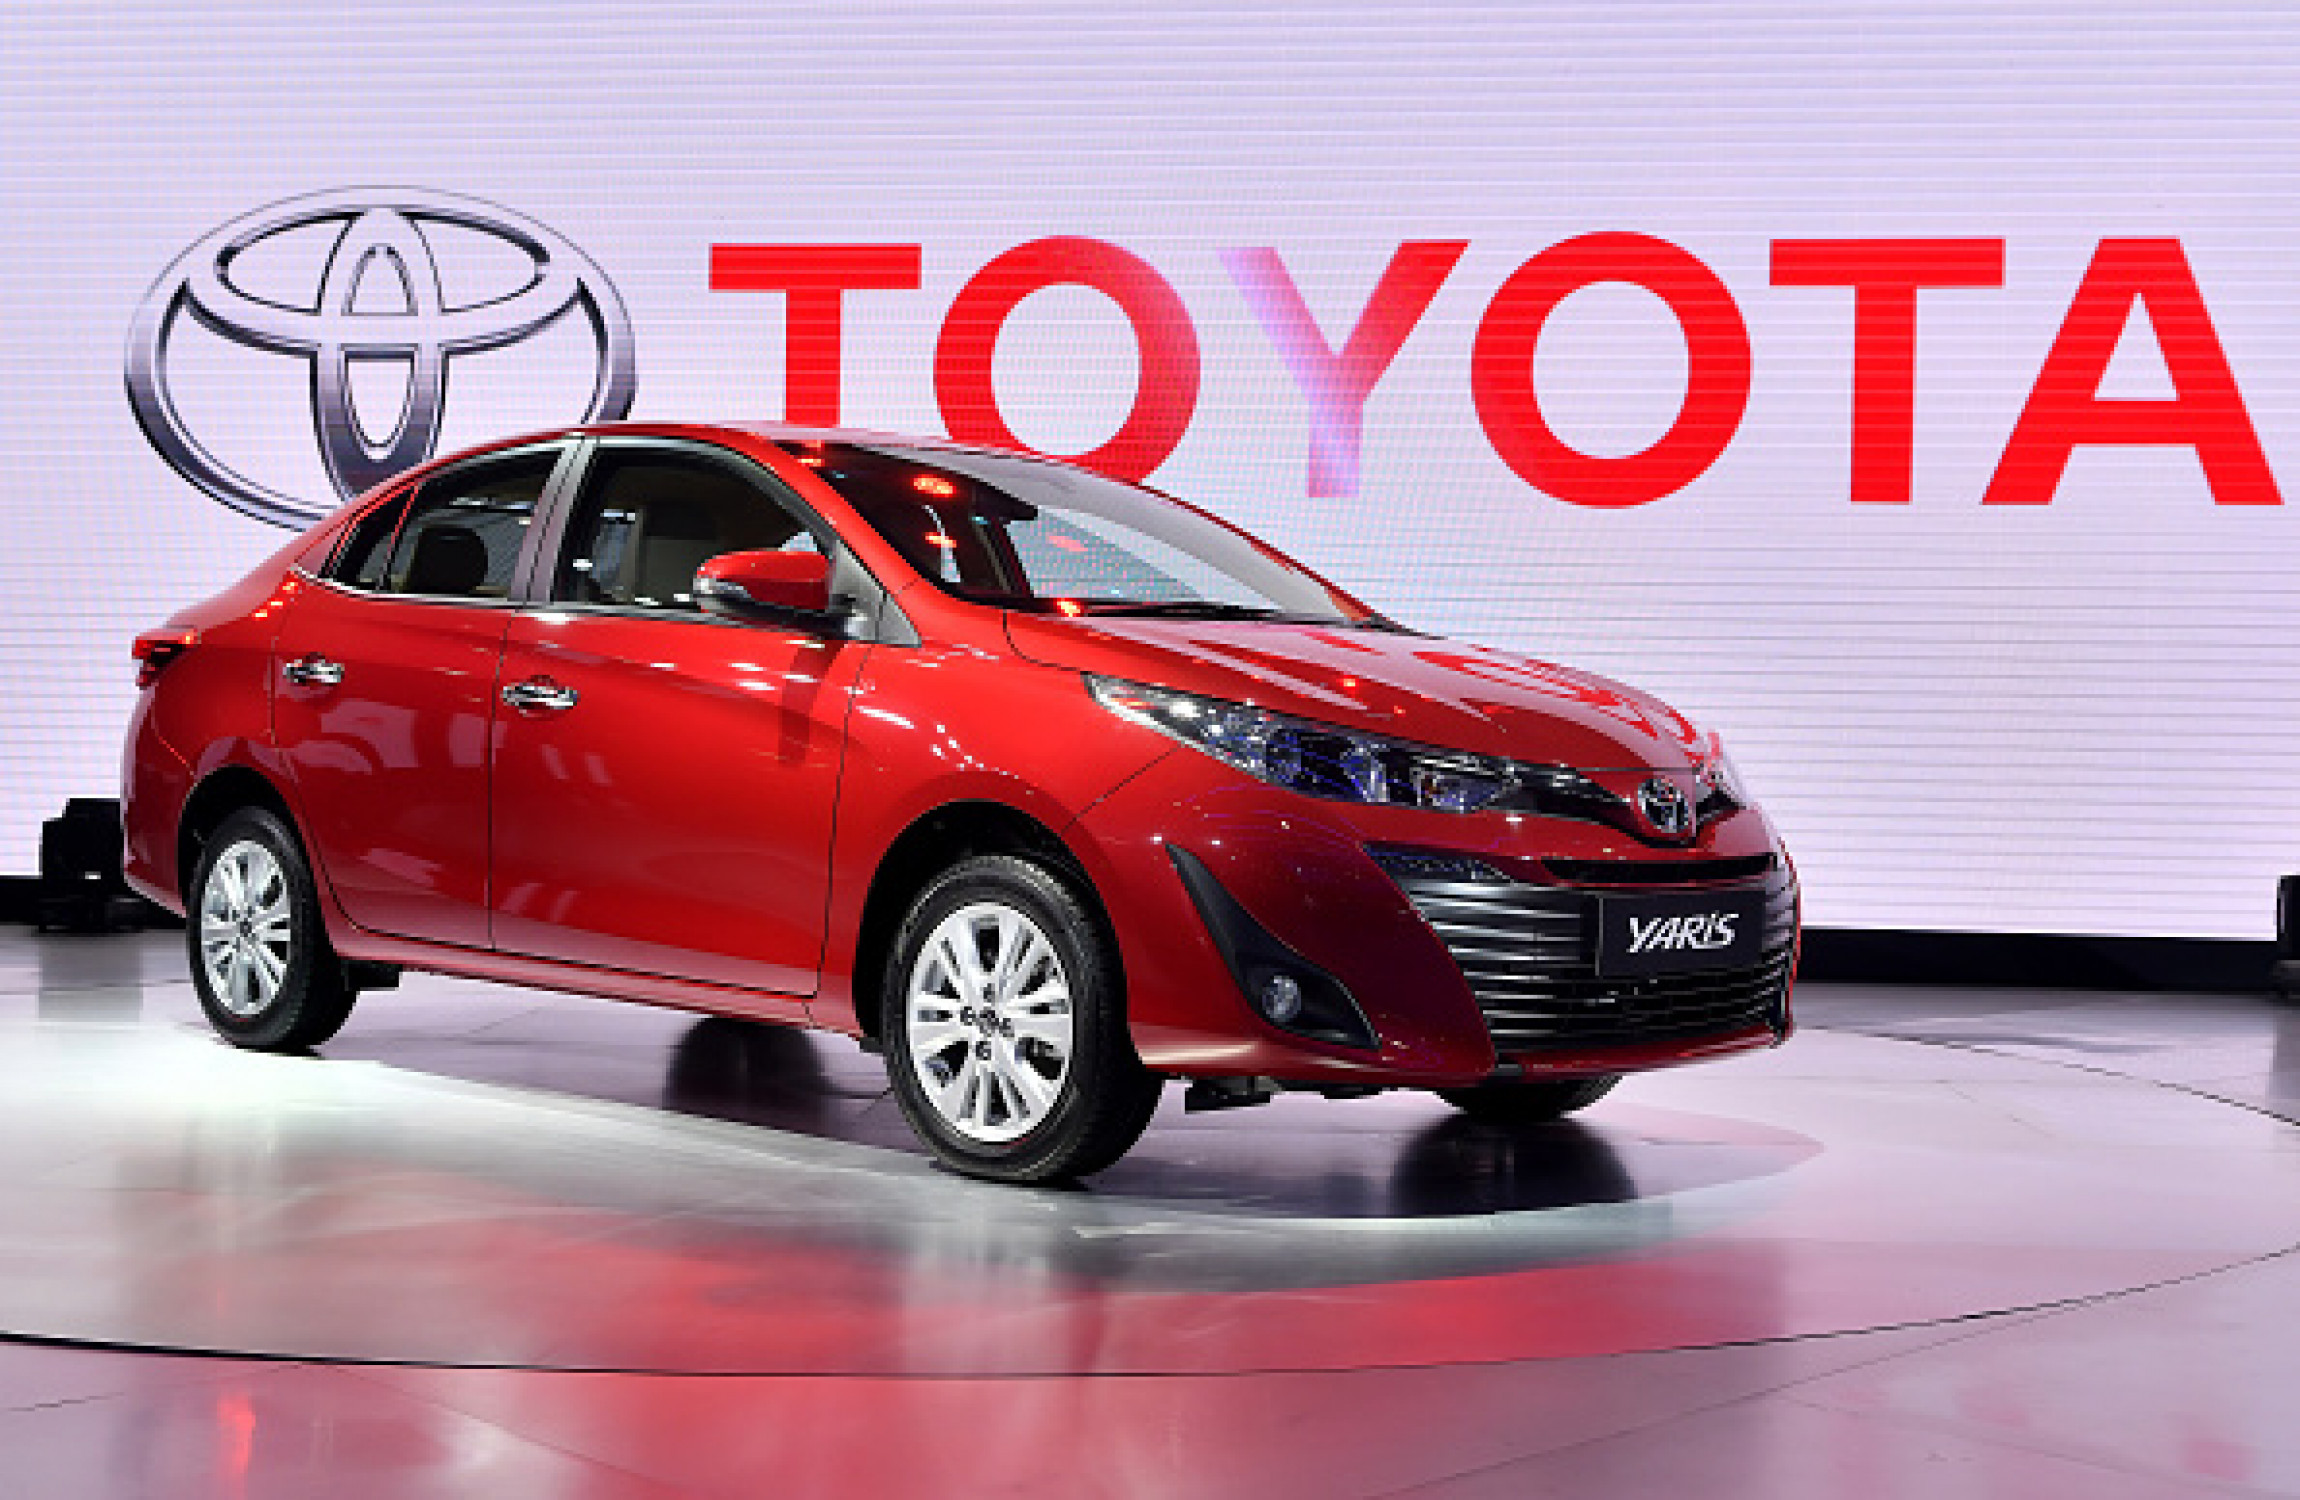 Toyota to stop selling diesel cars in Europe